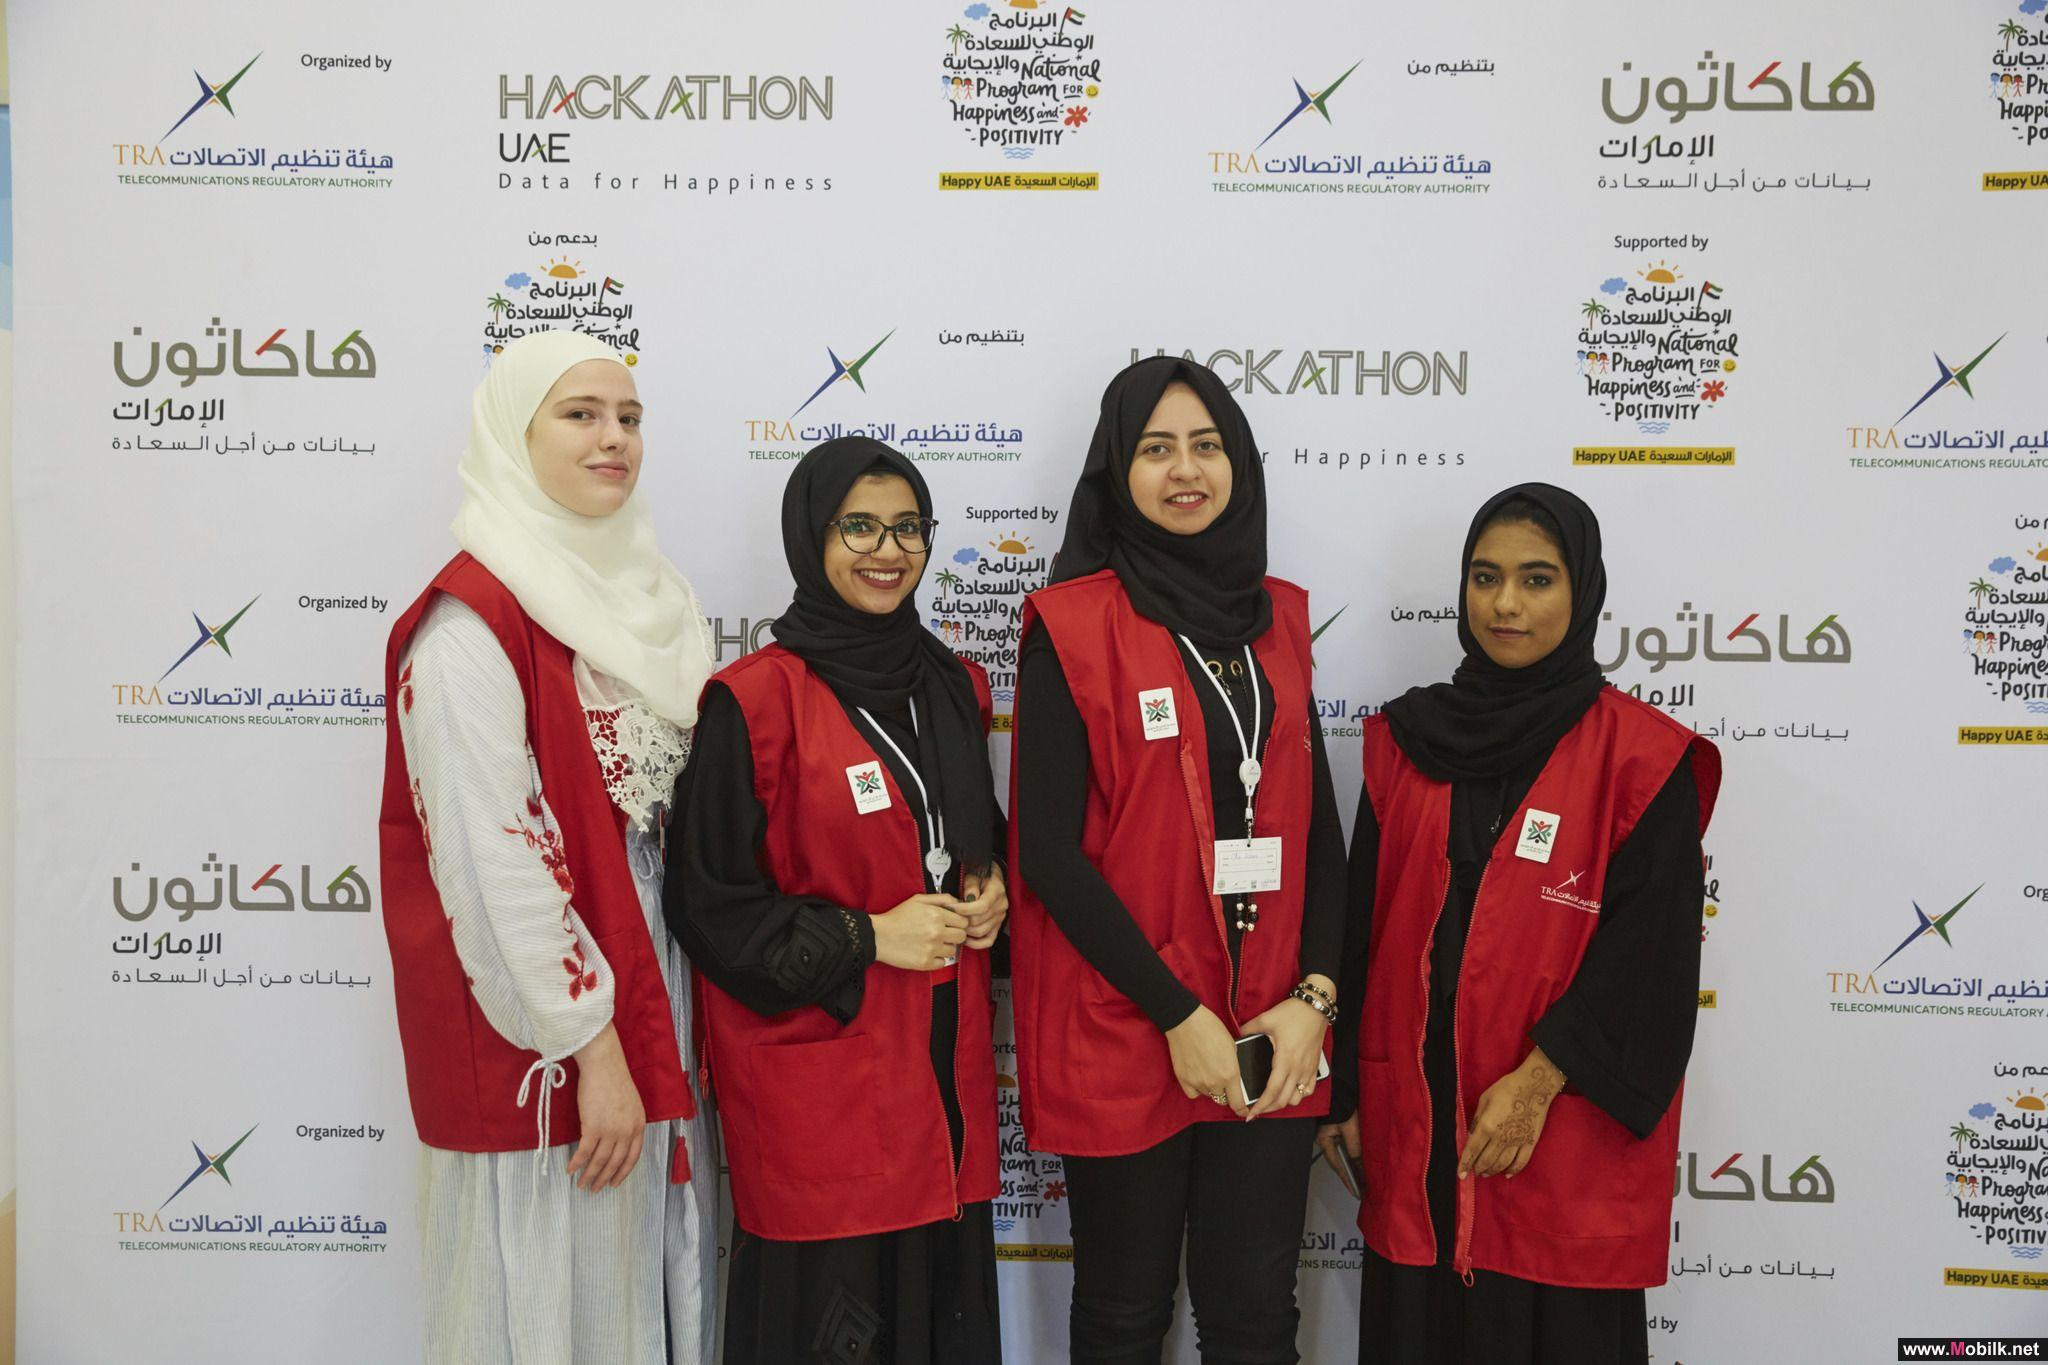 Conclusion of the third phase of UAE Hackathon at Ajman University